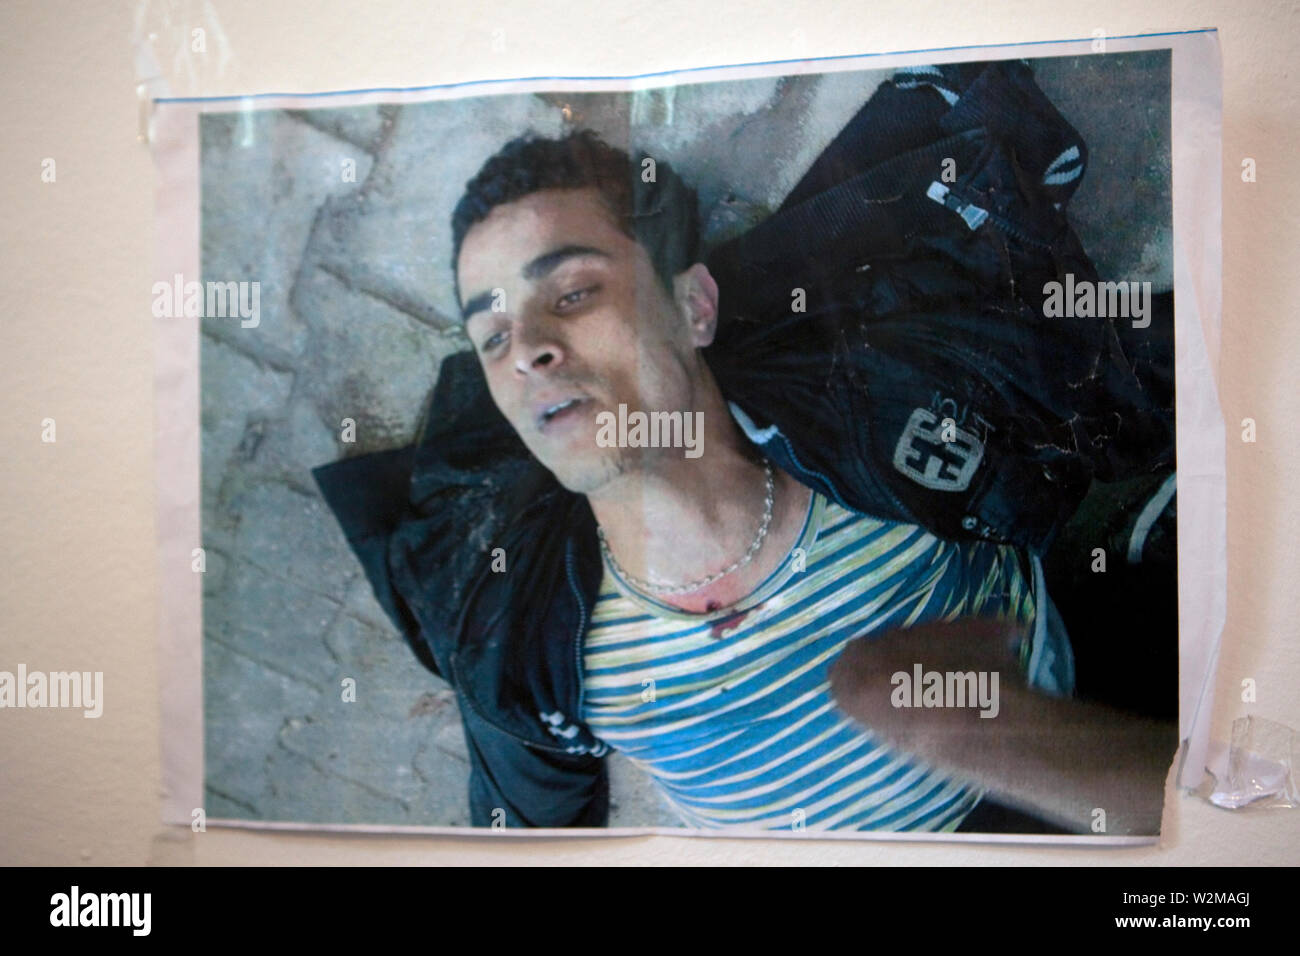 October 22, 2011- Tunis, Tunisia - Rached El Arbi, a 21-year-old Tunisian man who was shot on 13 January 2011 and has undergone six operation. Six men wounded during the revolution have started a hunger strike on October 18th, in a bid to further pressure the Tunisian Government to secure medical and financial compensation to the martyrs of the Tunisian revolution at the headquarters of the independent collective blog Nawaat, in central Tunis. Two of the wounded have had at least one of their legs amputated, and others no longer have the use of their legs. People injured during the protests th - Stock Image